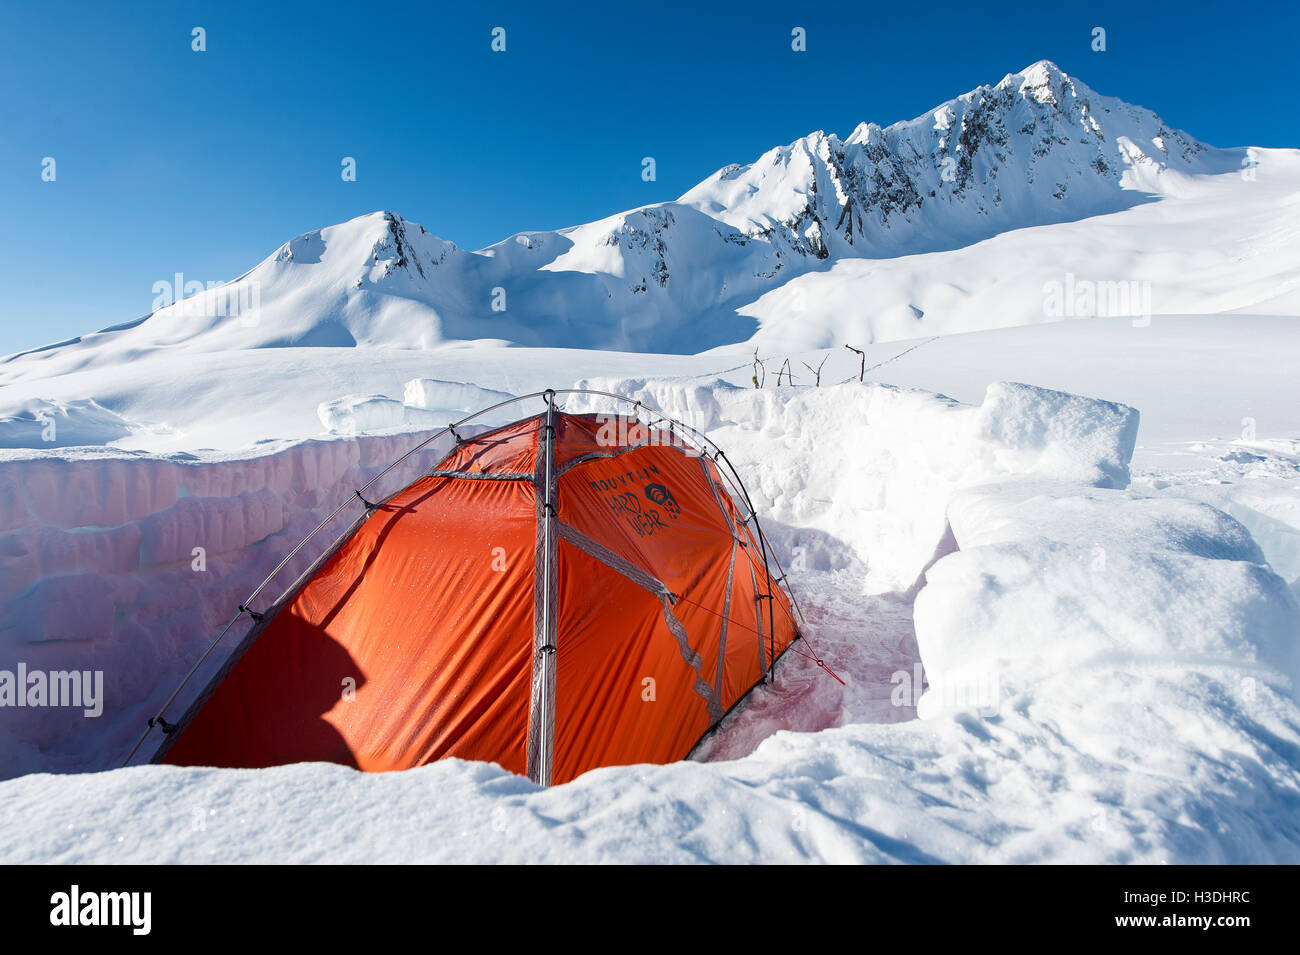 Snowboard expedition base camp in Canada - Stock Image